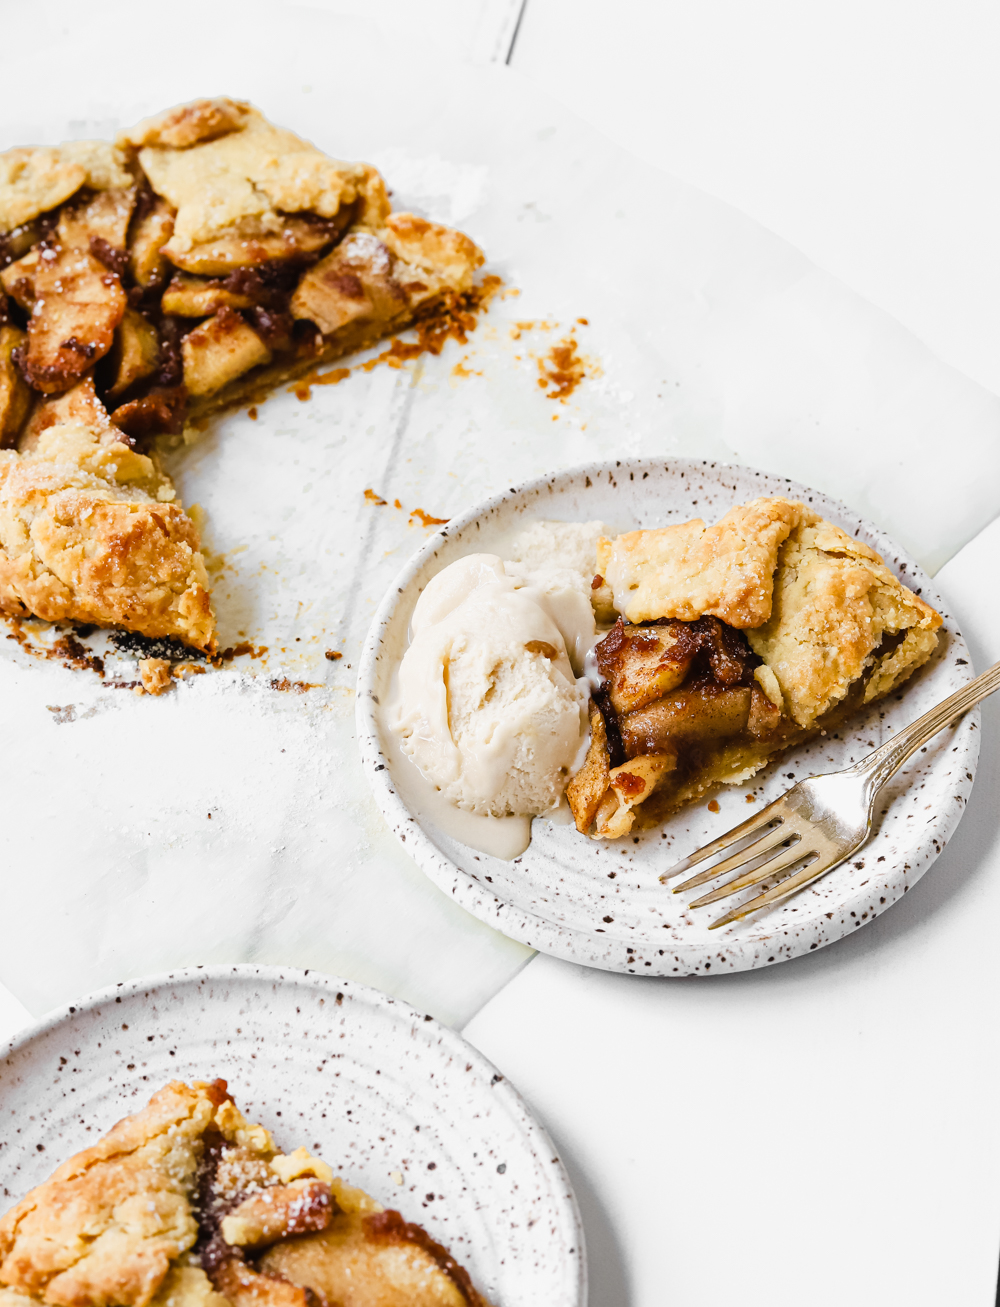 A slice of vegan apple pie galette on a small white speckled plate with a fork and scoop of vanilla caramel ice cream.